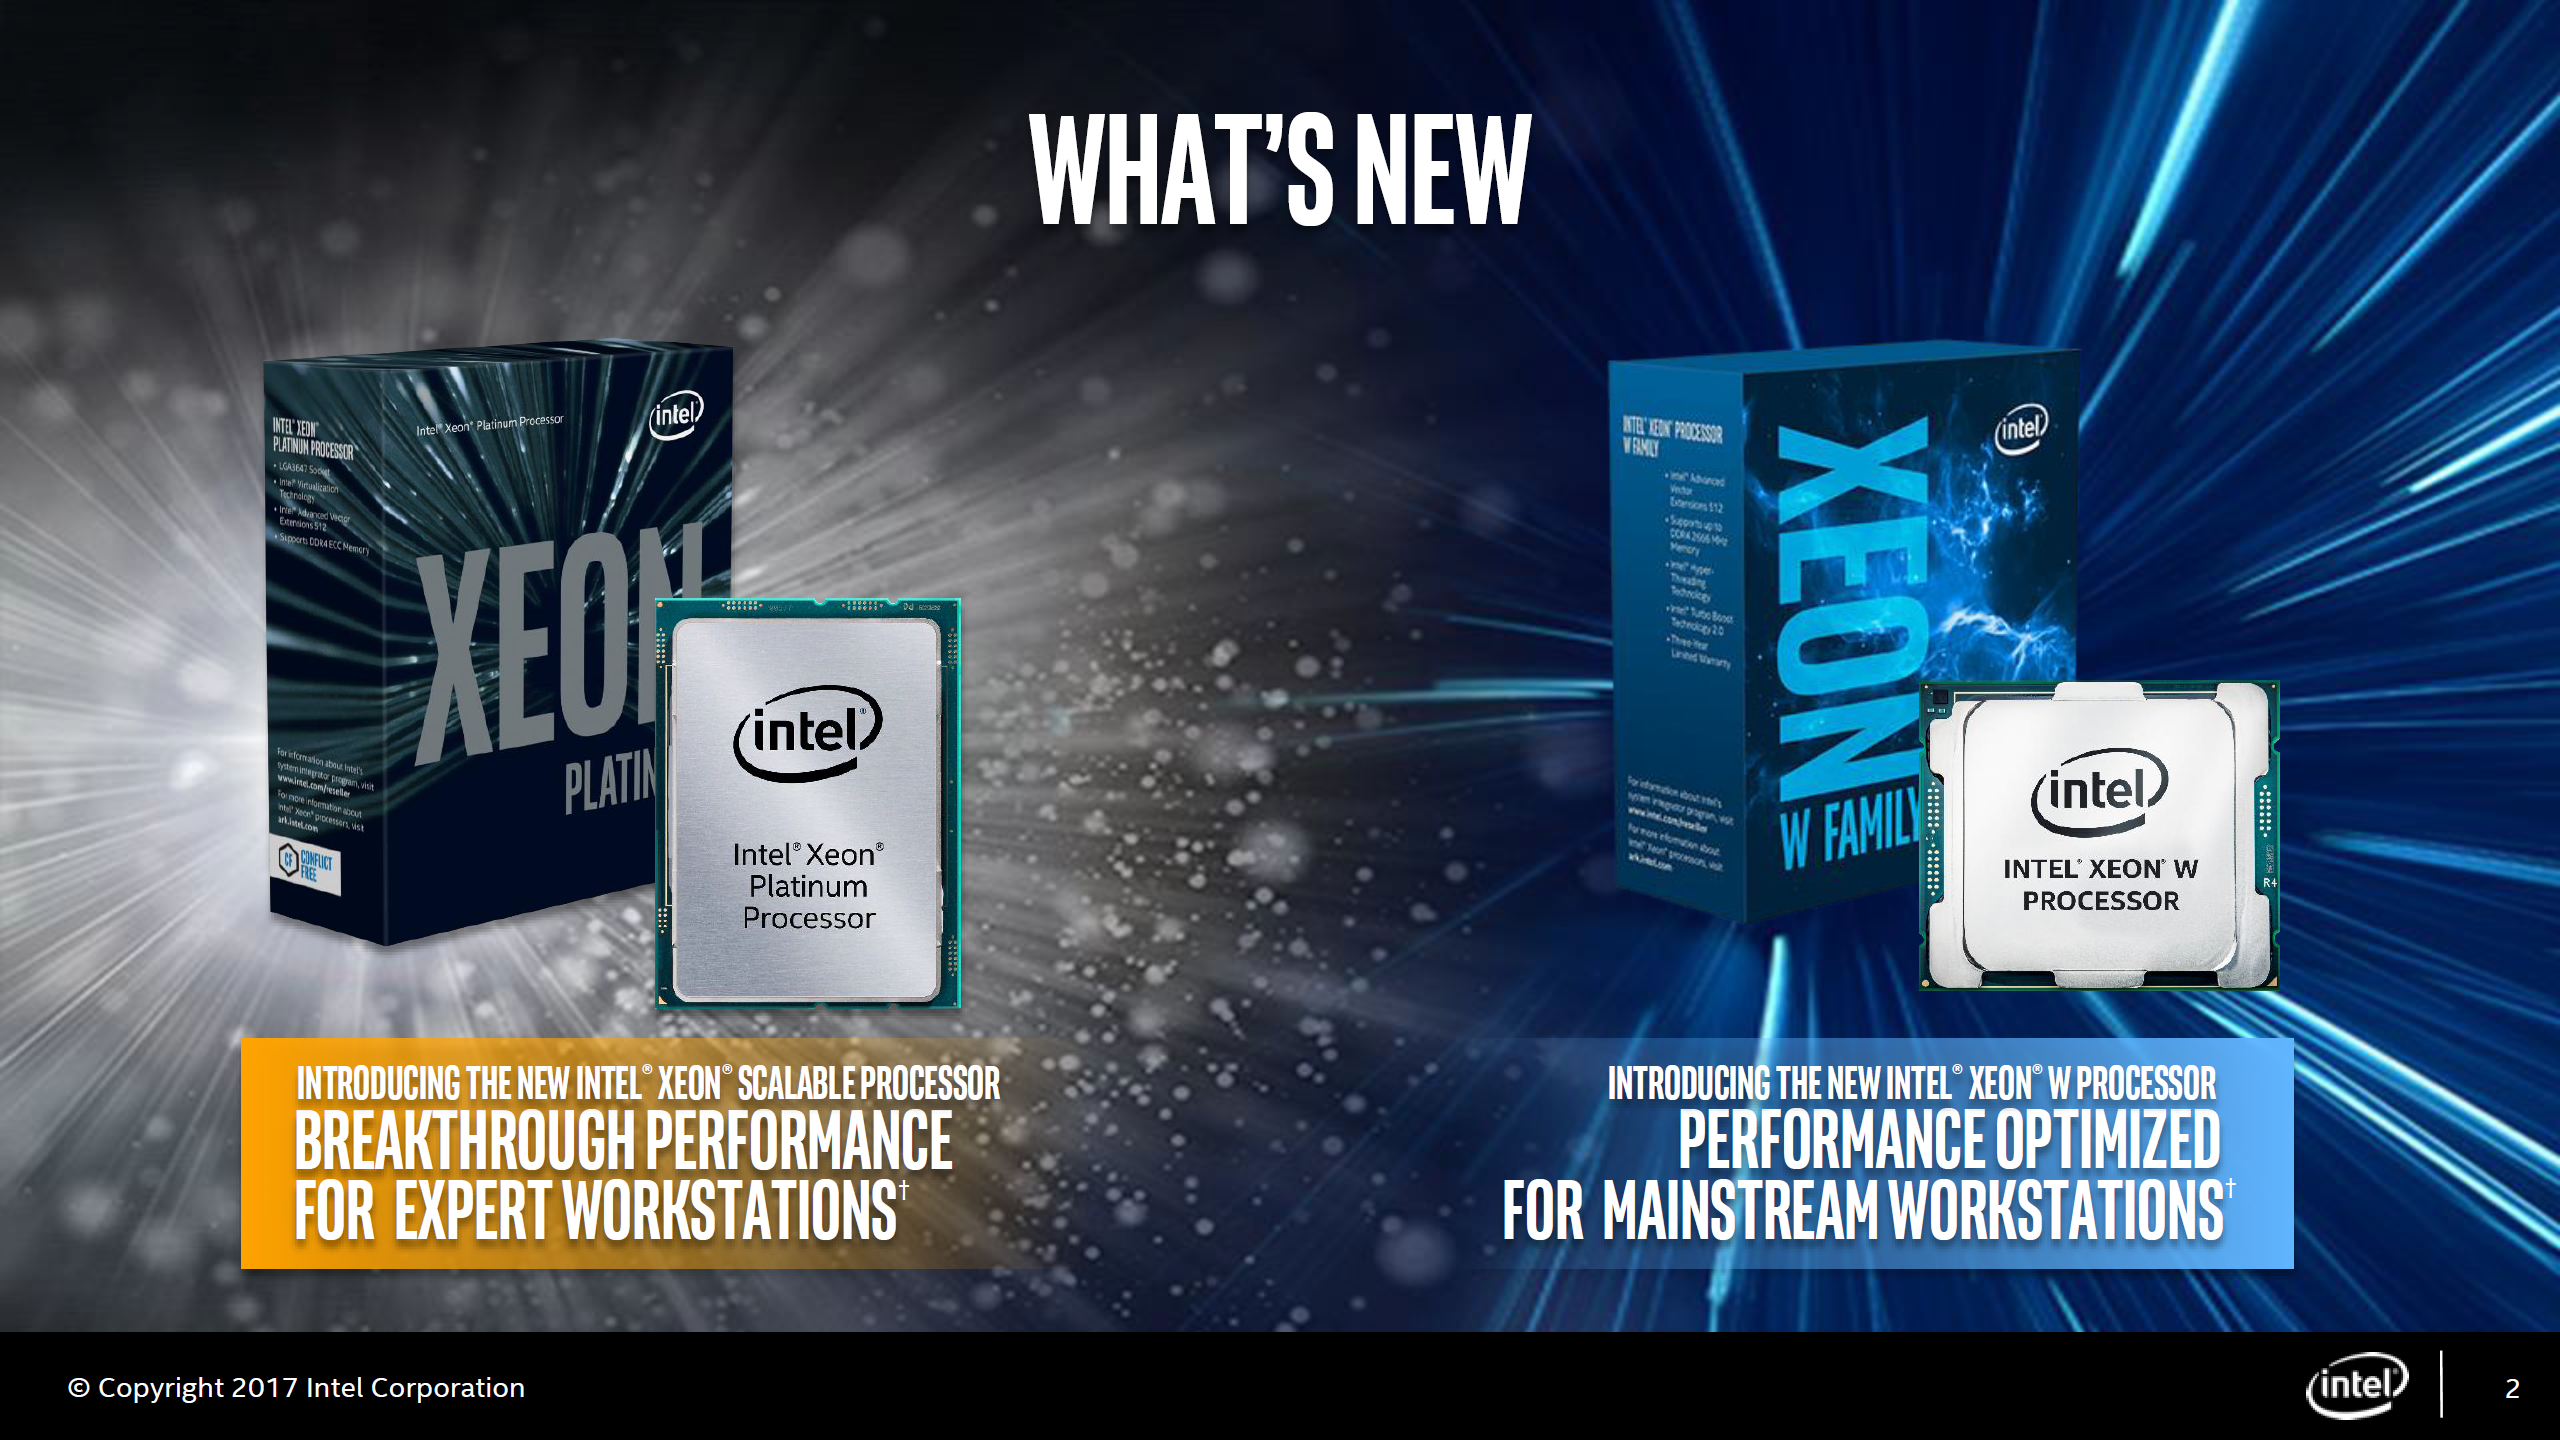 Intel Xeon W Workstation Processors Launched on LGA 2066 Socket – C422 Chipset Platform With Support For Up To 18 Core SKUs, 512 GB DDR4-2666 Memory, 48 Native PCIe Lanes